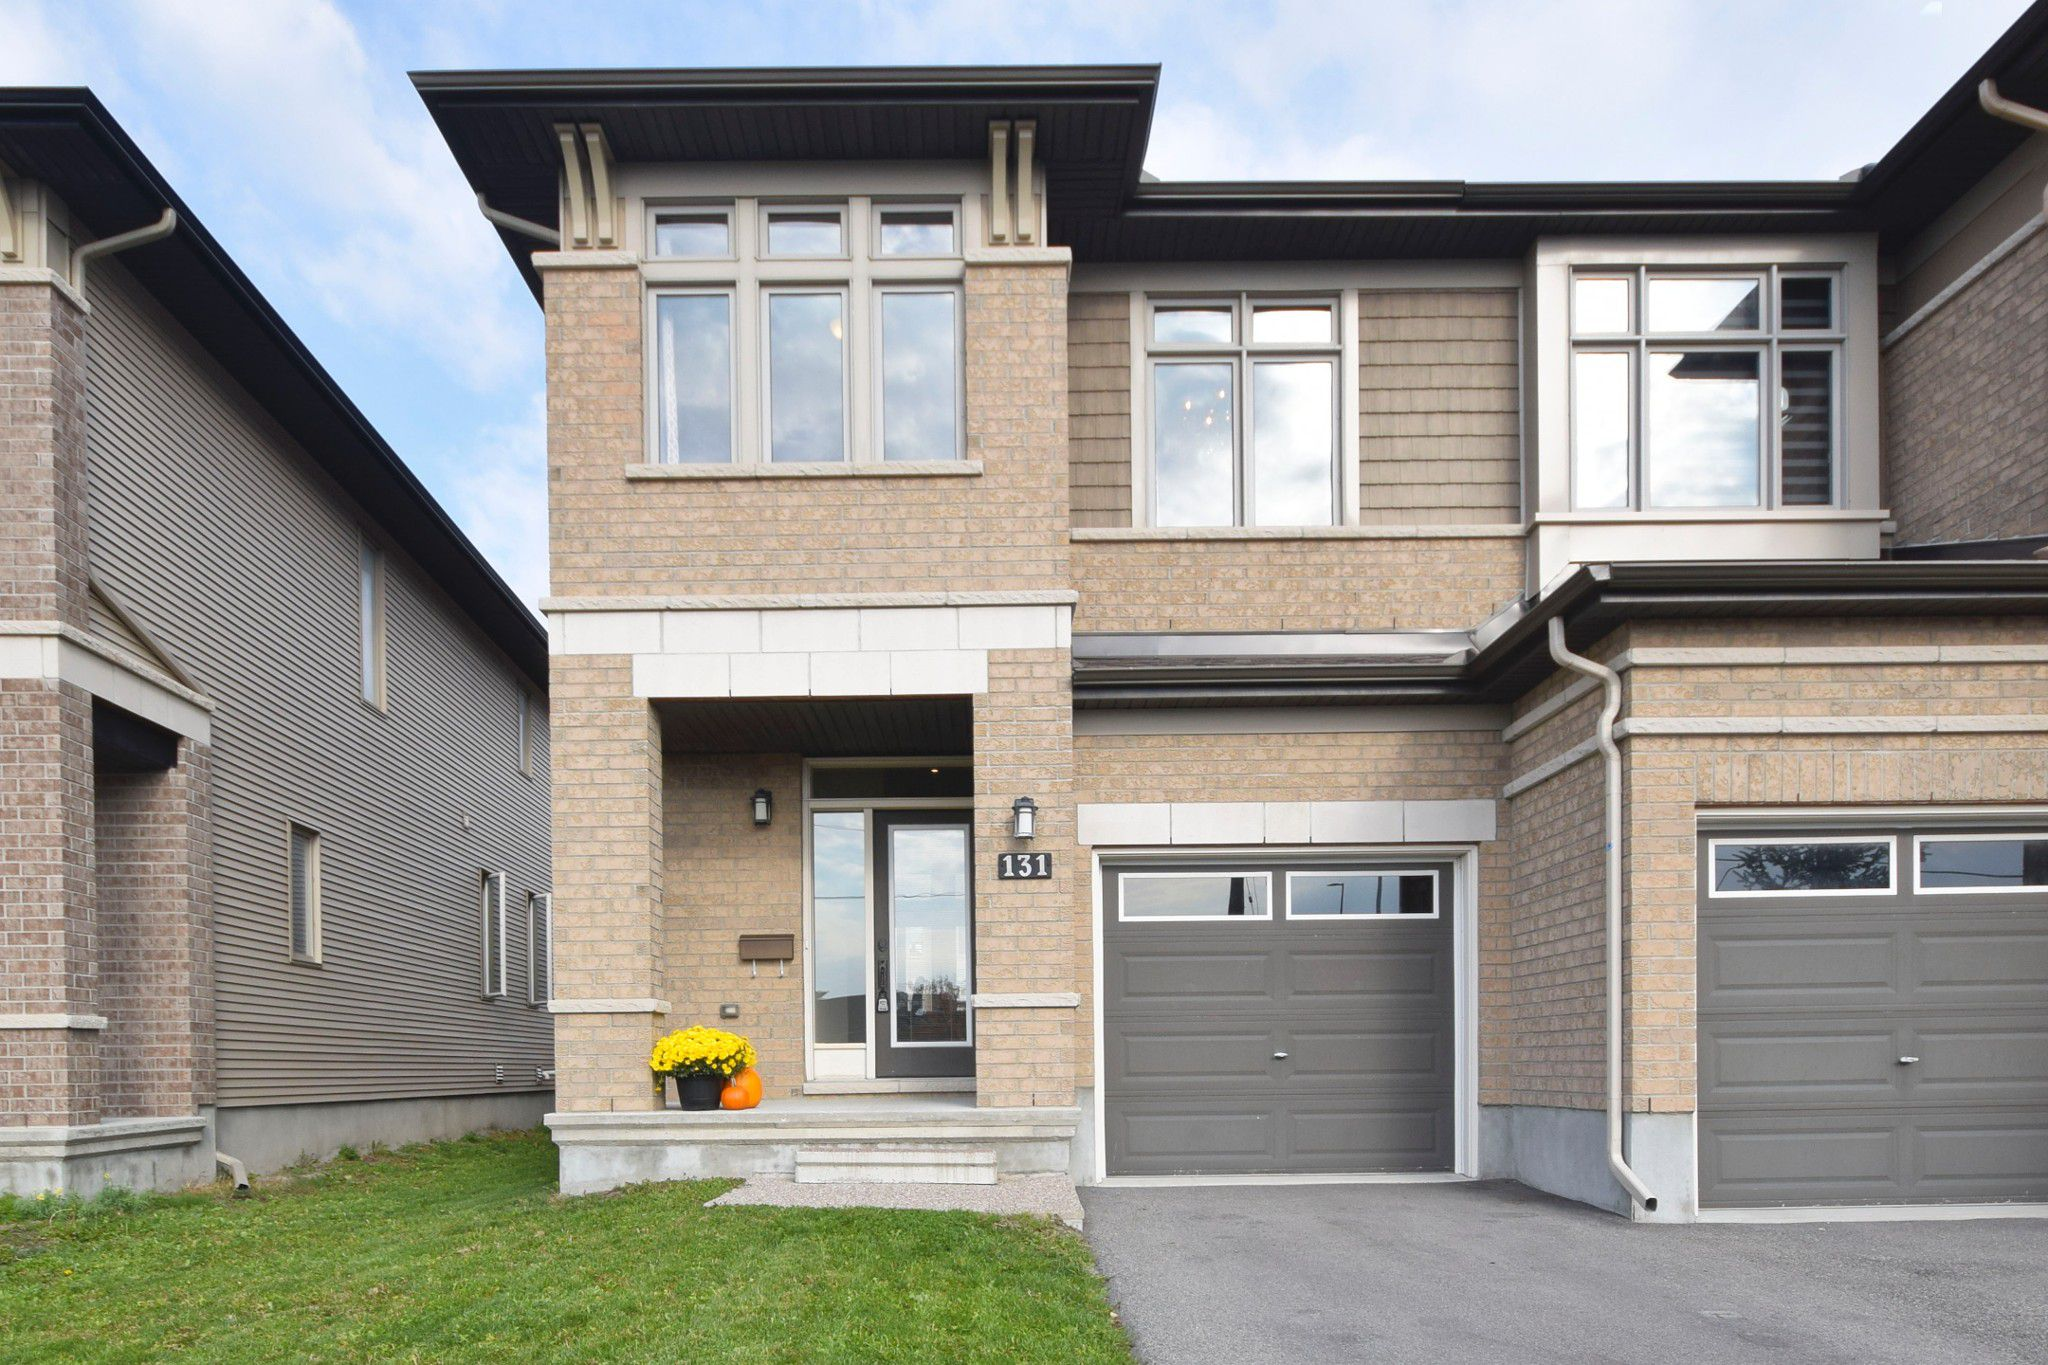 Photo 3: Photos: 131 Popplewell Crescent in Ottawa: Cedargrove / Fraserdale House for sale (Barrhaven)  : MLS®# 1130335